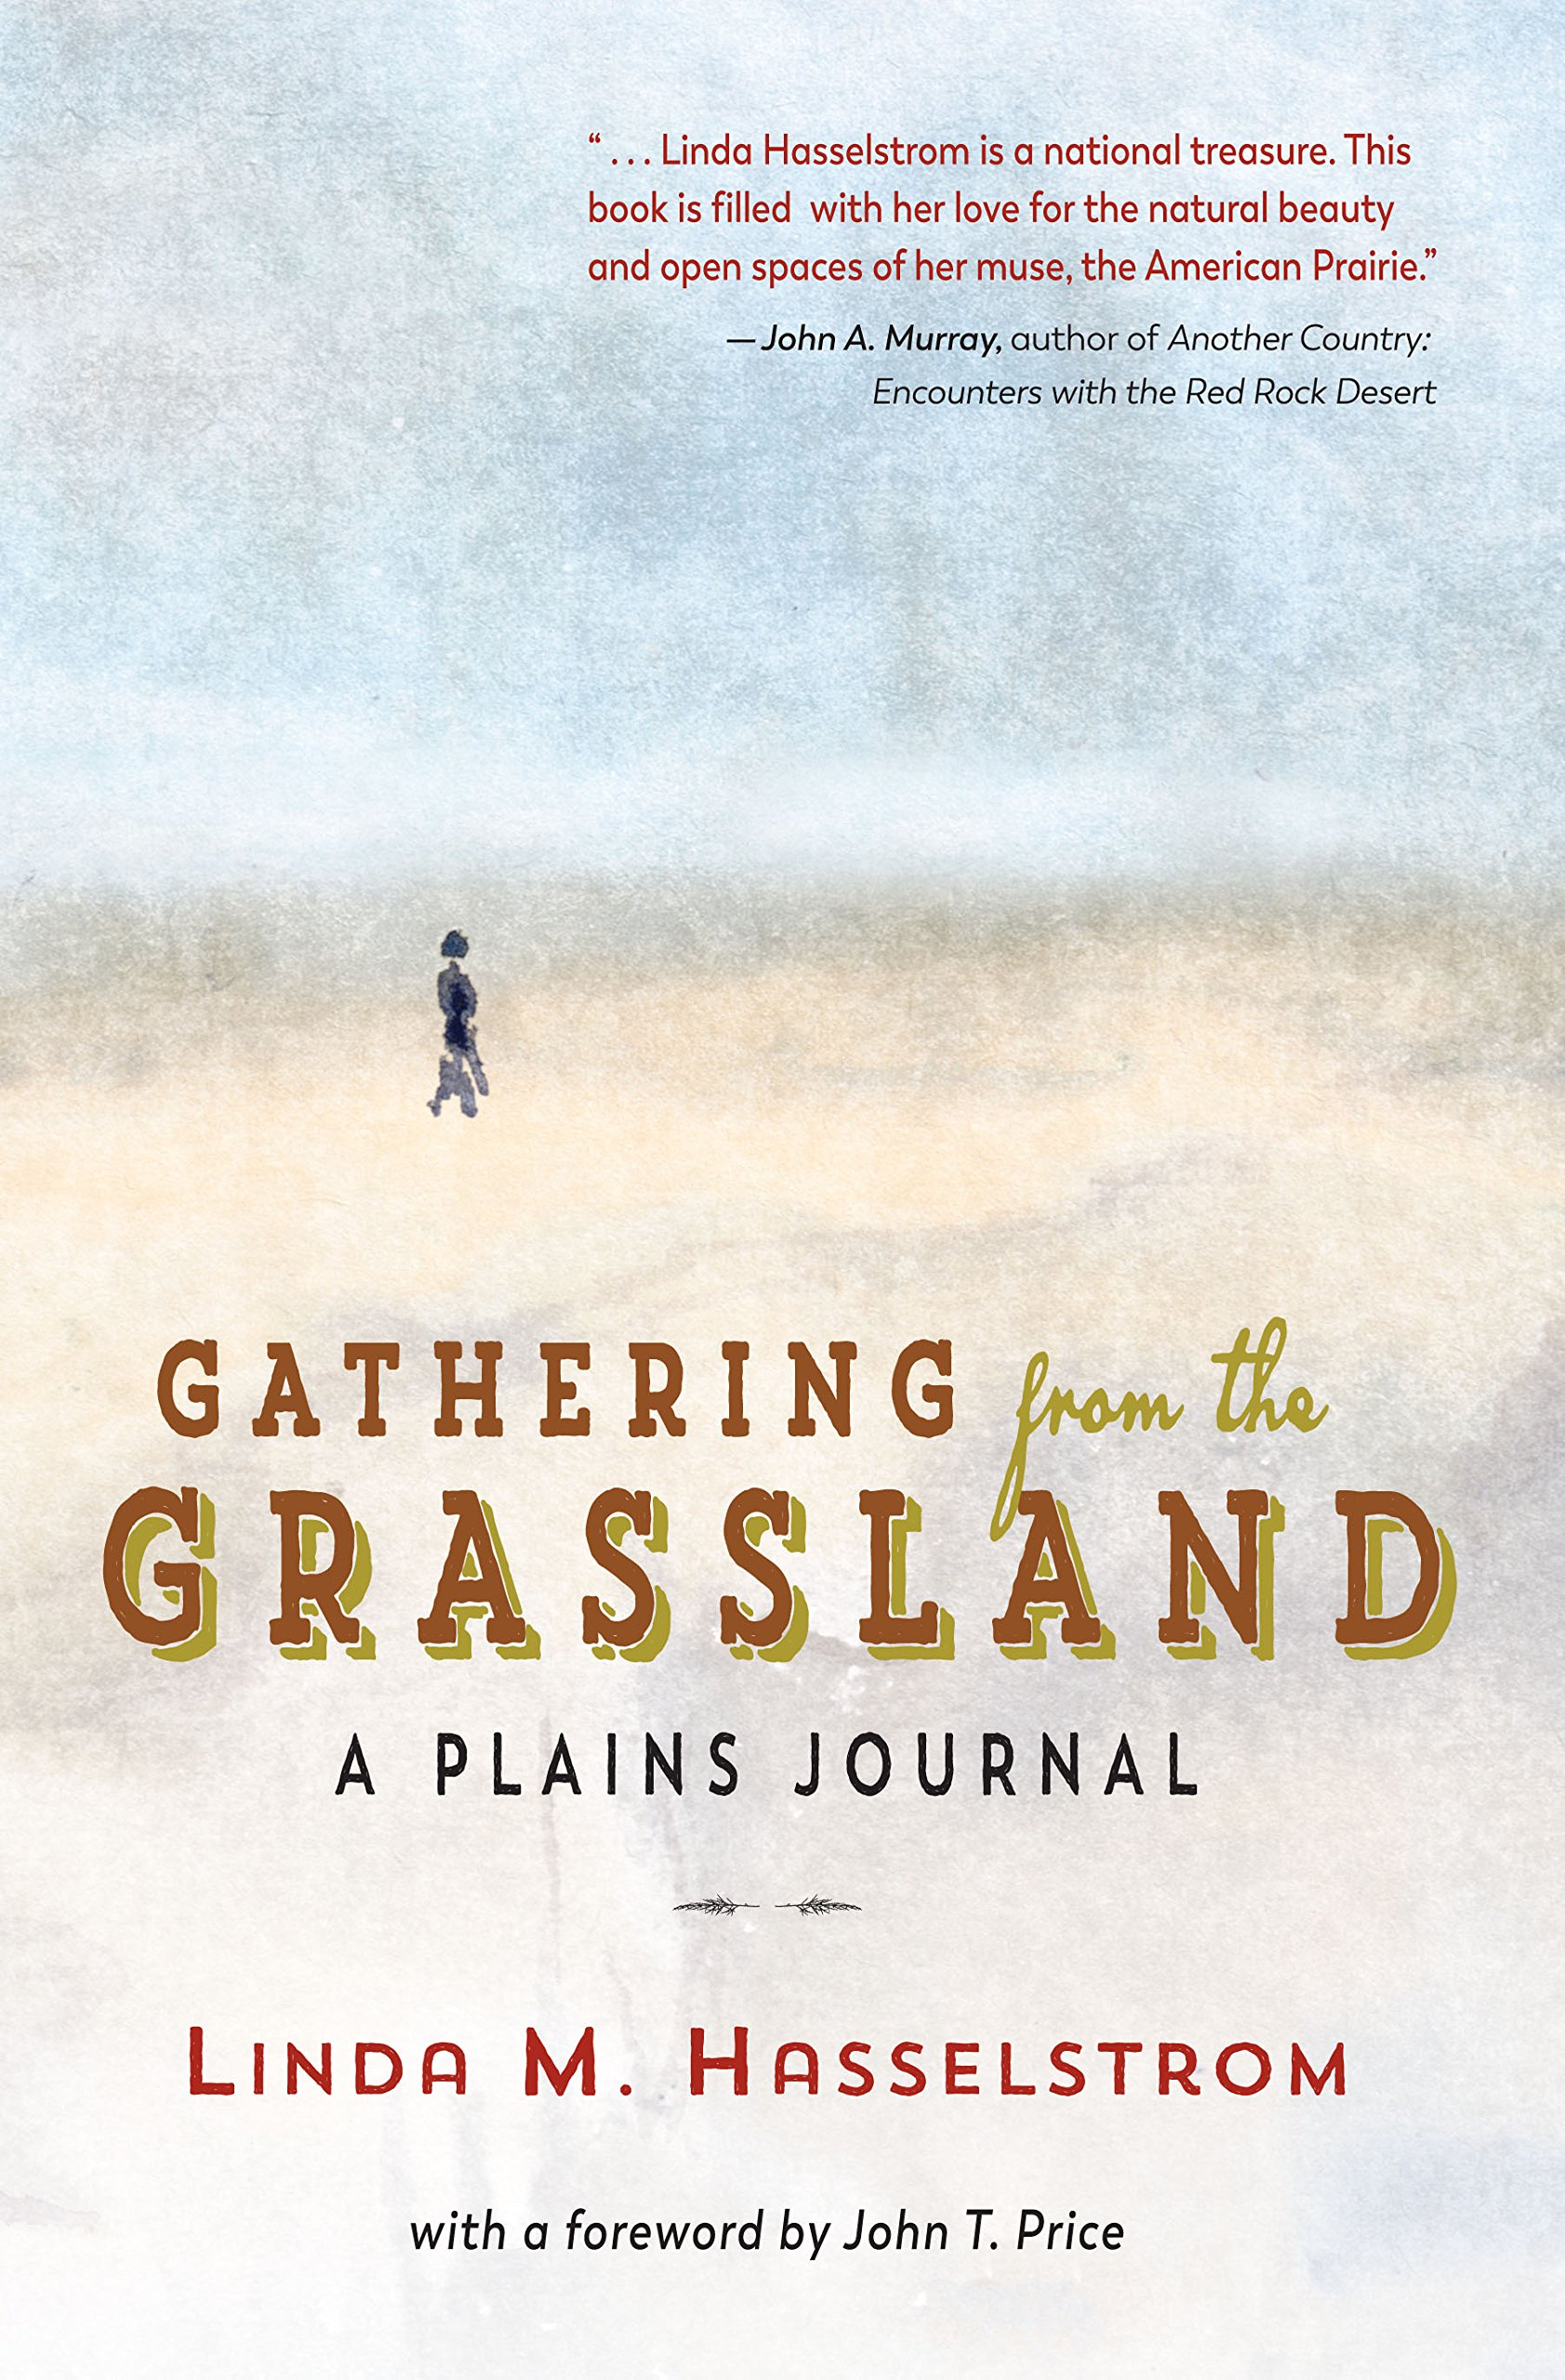 Gathering from the grassland a plains journal linda m gathering from the grassland a plains journal linda m hasselstrom 9781937147129 amazon books fandeluxe Choice Image